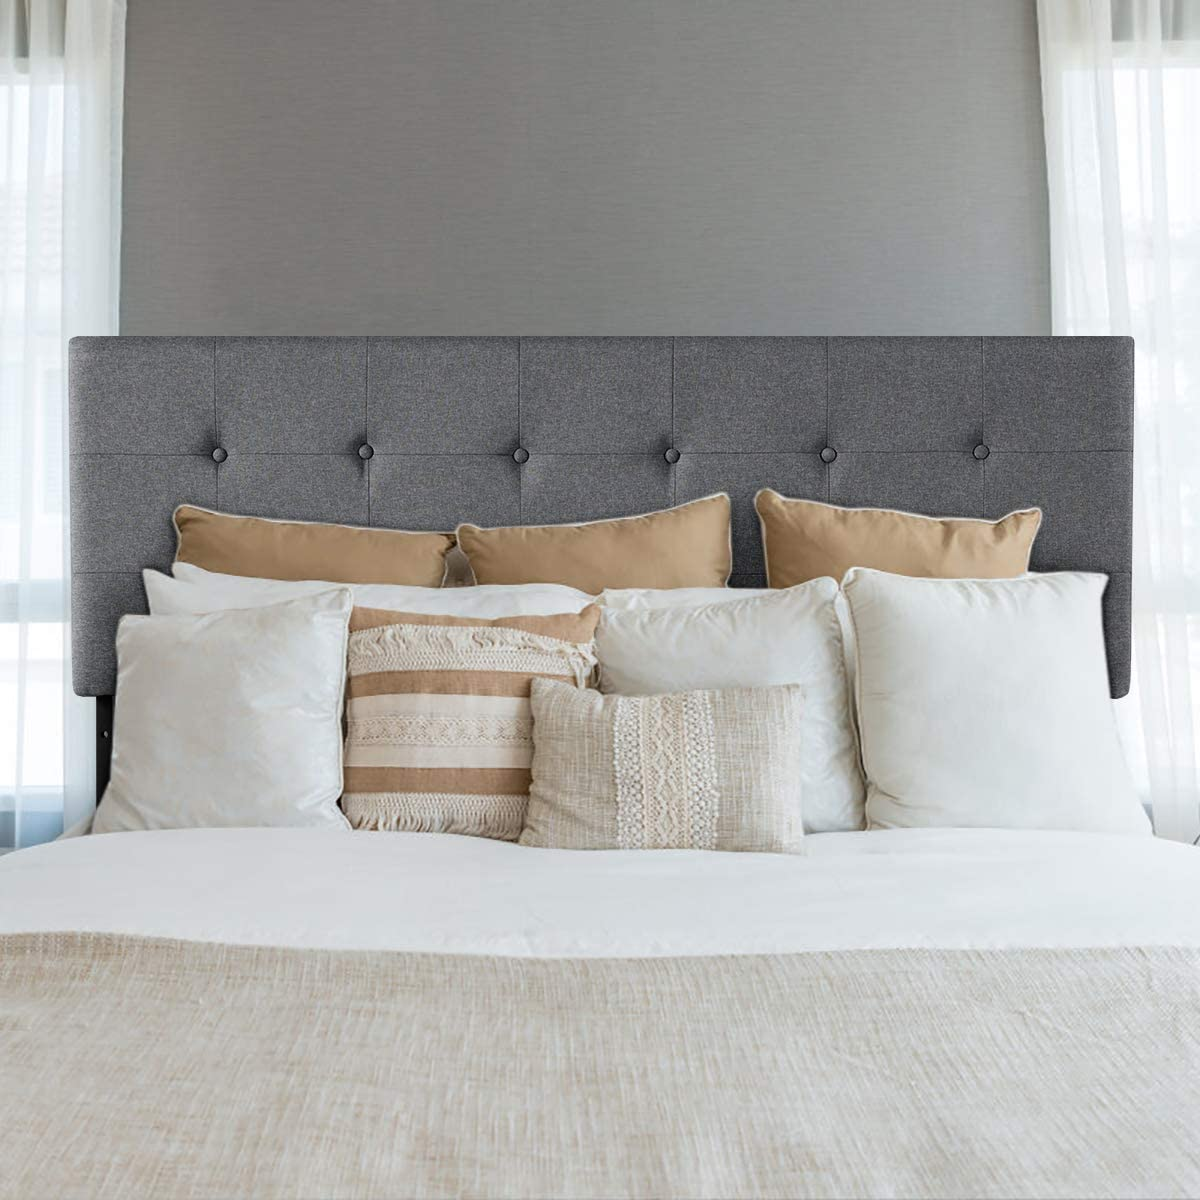 Giantex Modern Upholstered Headboard